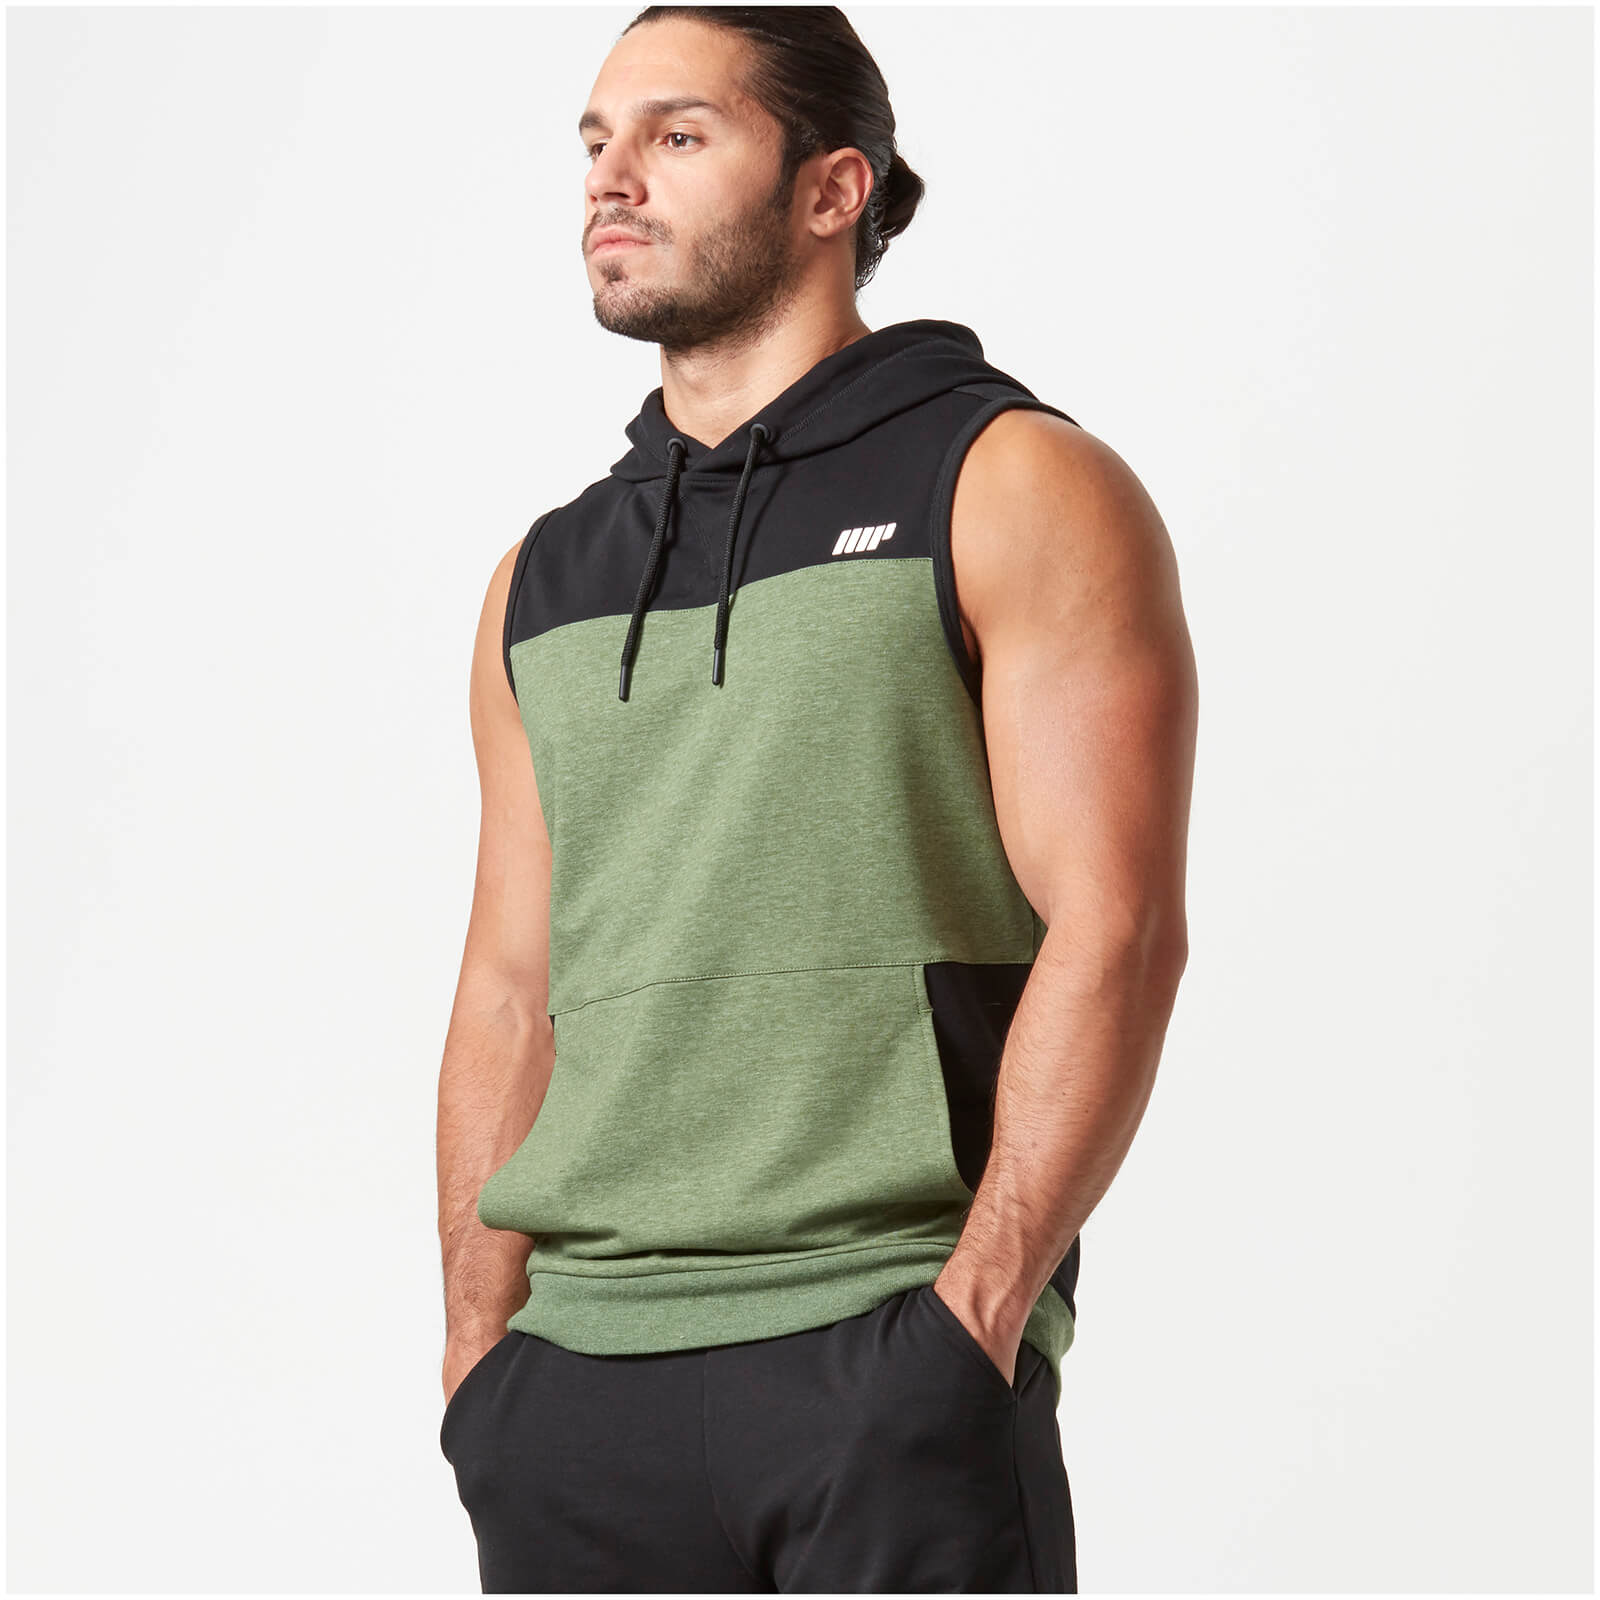 Myprotein Superlite Sleeveless Zip-Up Hoodie - Khaki - XL